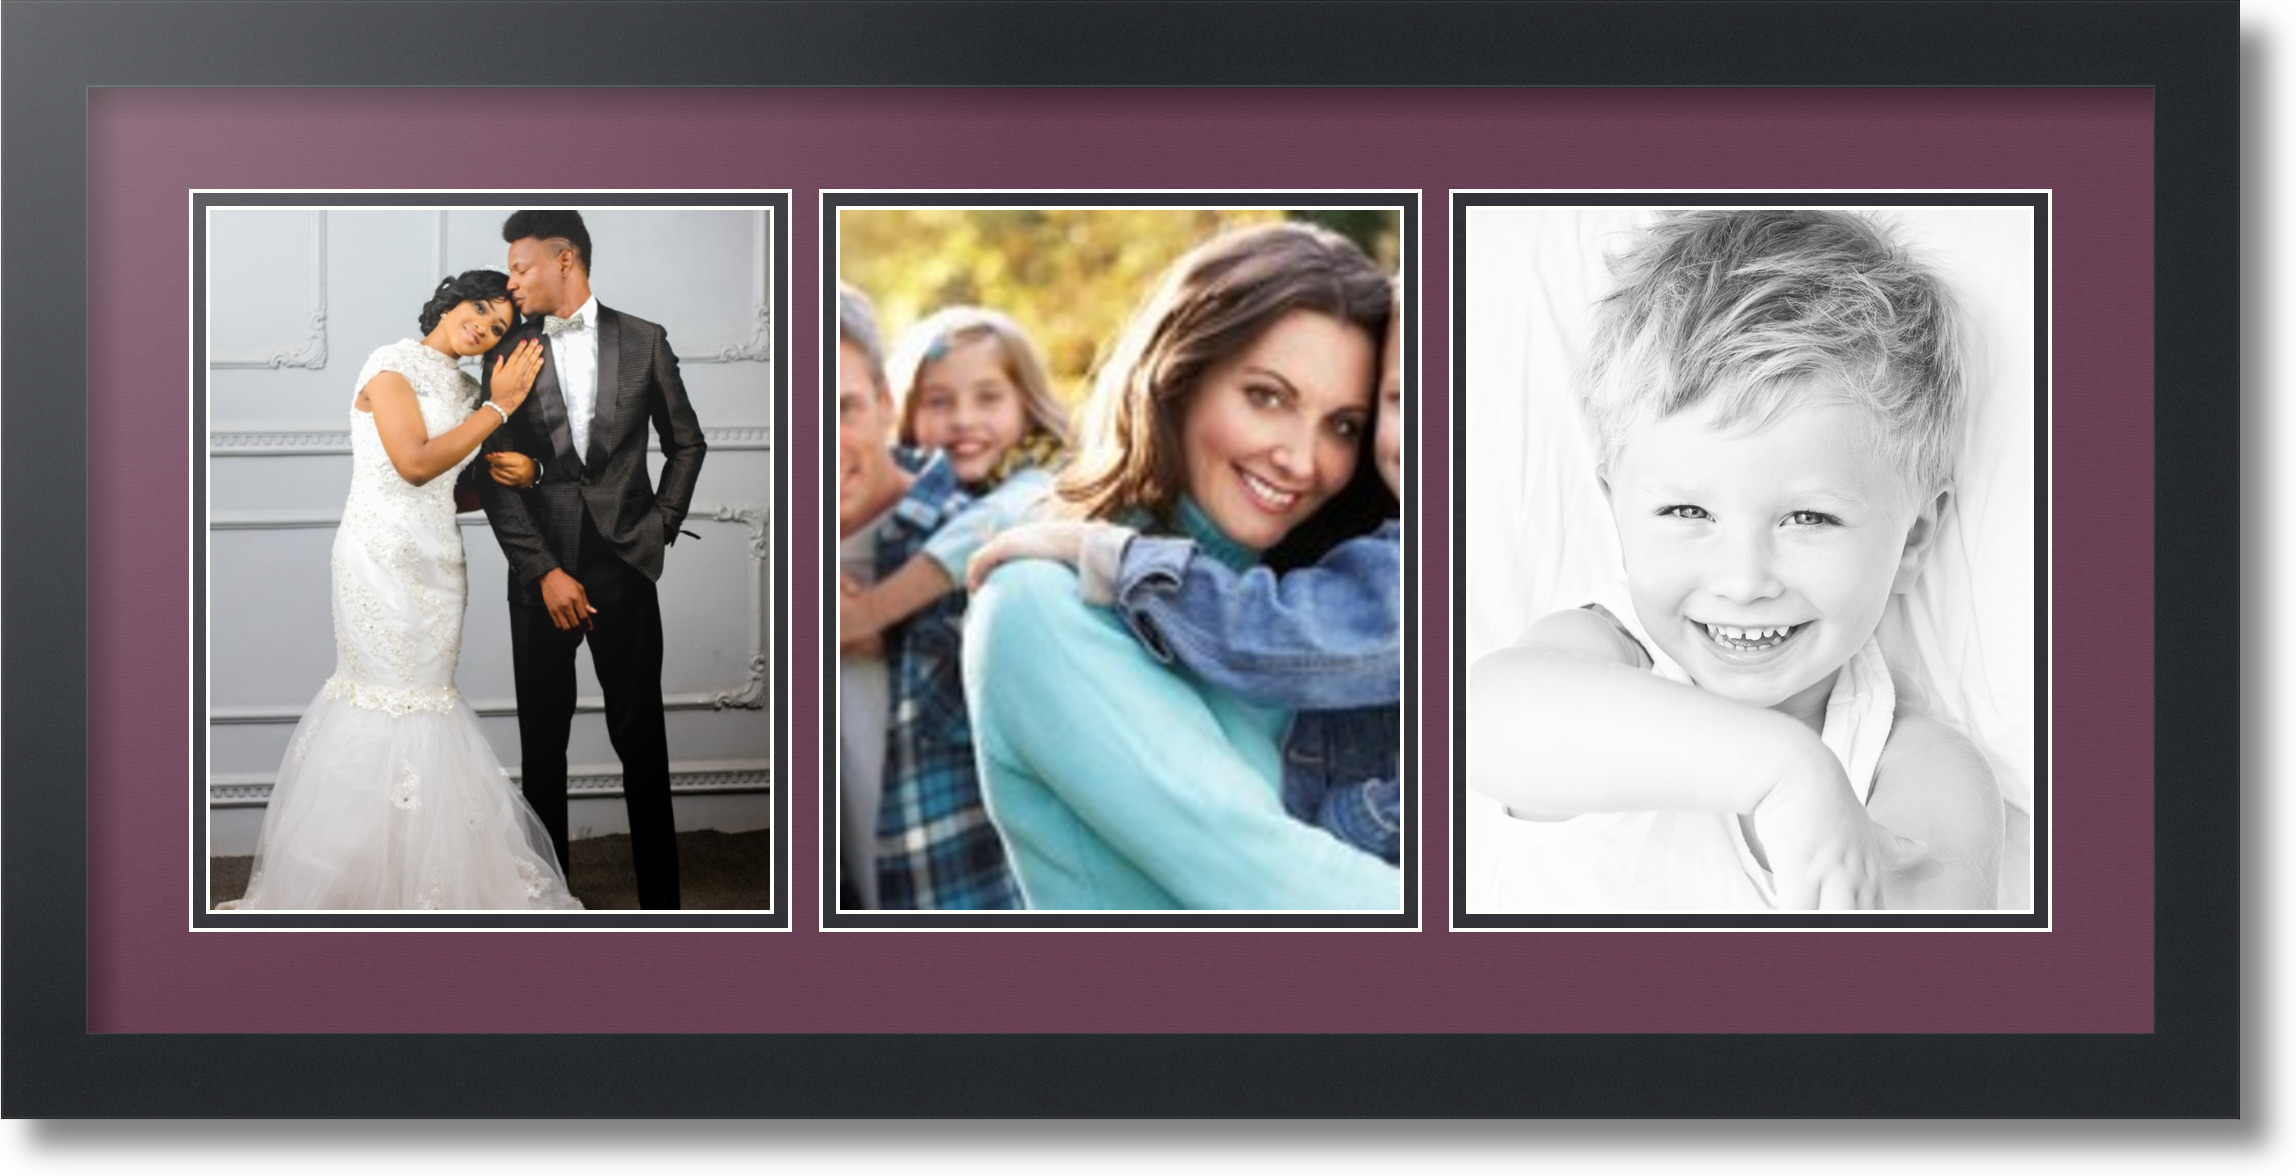 Magnificent Picture Frame 3 8x10 Gallery - Frame Photo Design Ideas ...